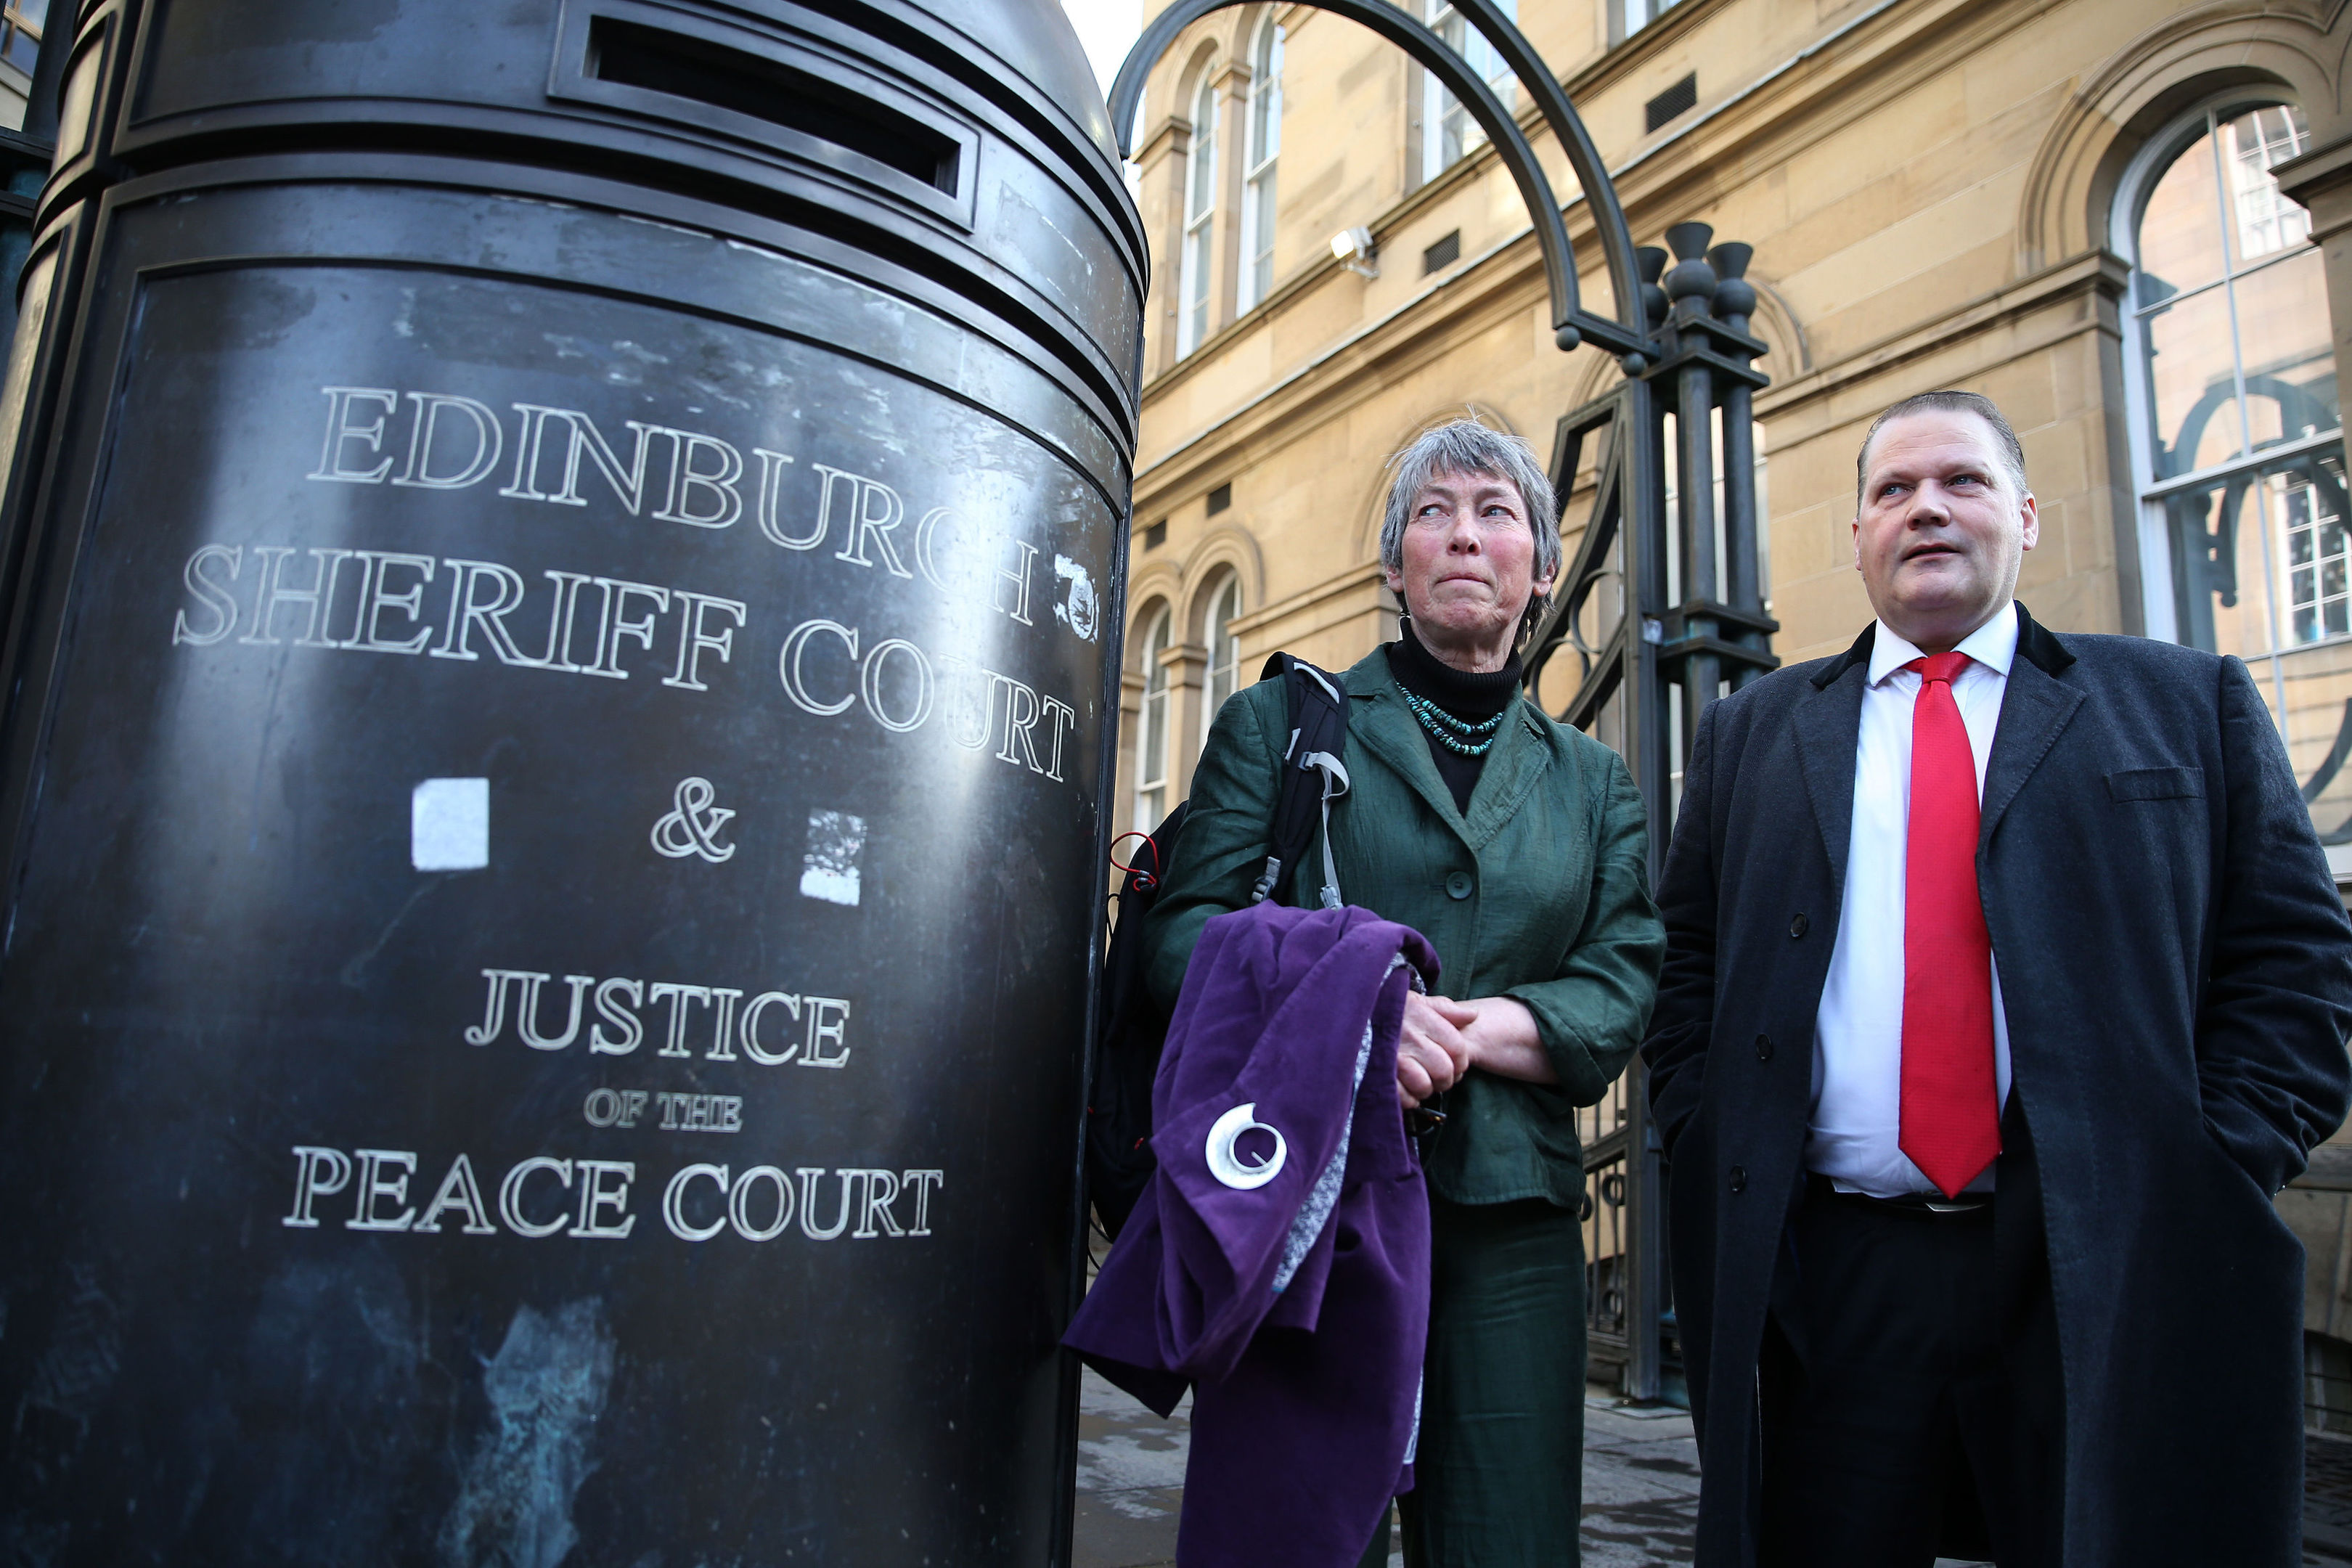 Carol Rohan Beyts, with her lawyer lawyer Mike Dailly outside Edinburgh Sheriff Court, who has been permitted to pursue damages against Donald Trump's Aberdeenshire golf course over allegations that staff filmed her urinating. (Andrew Milligan/PA Wire)